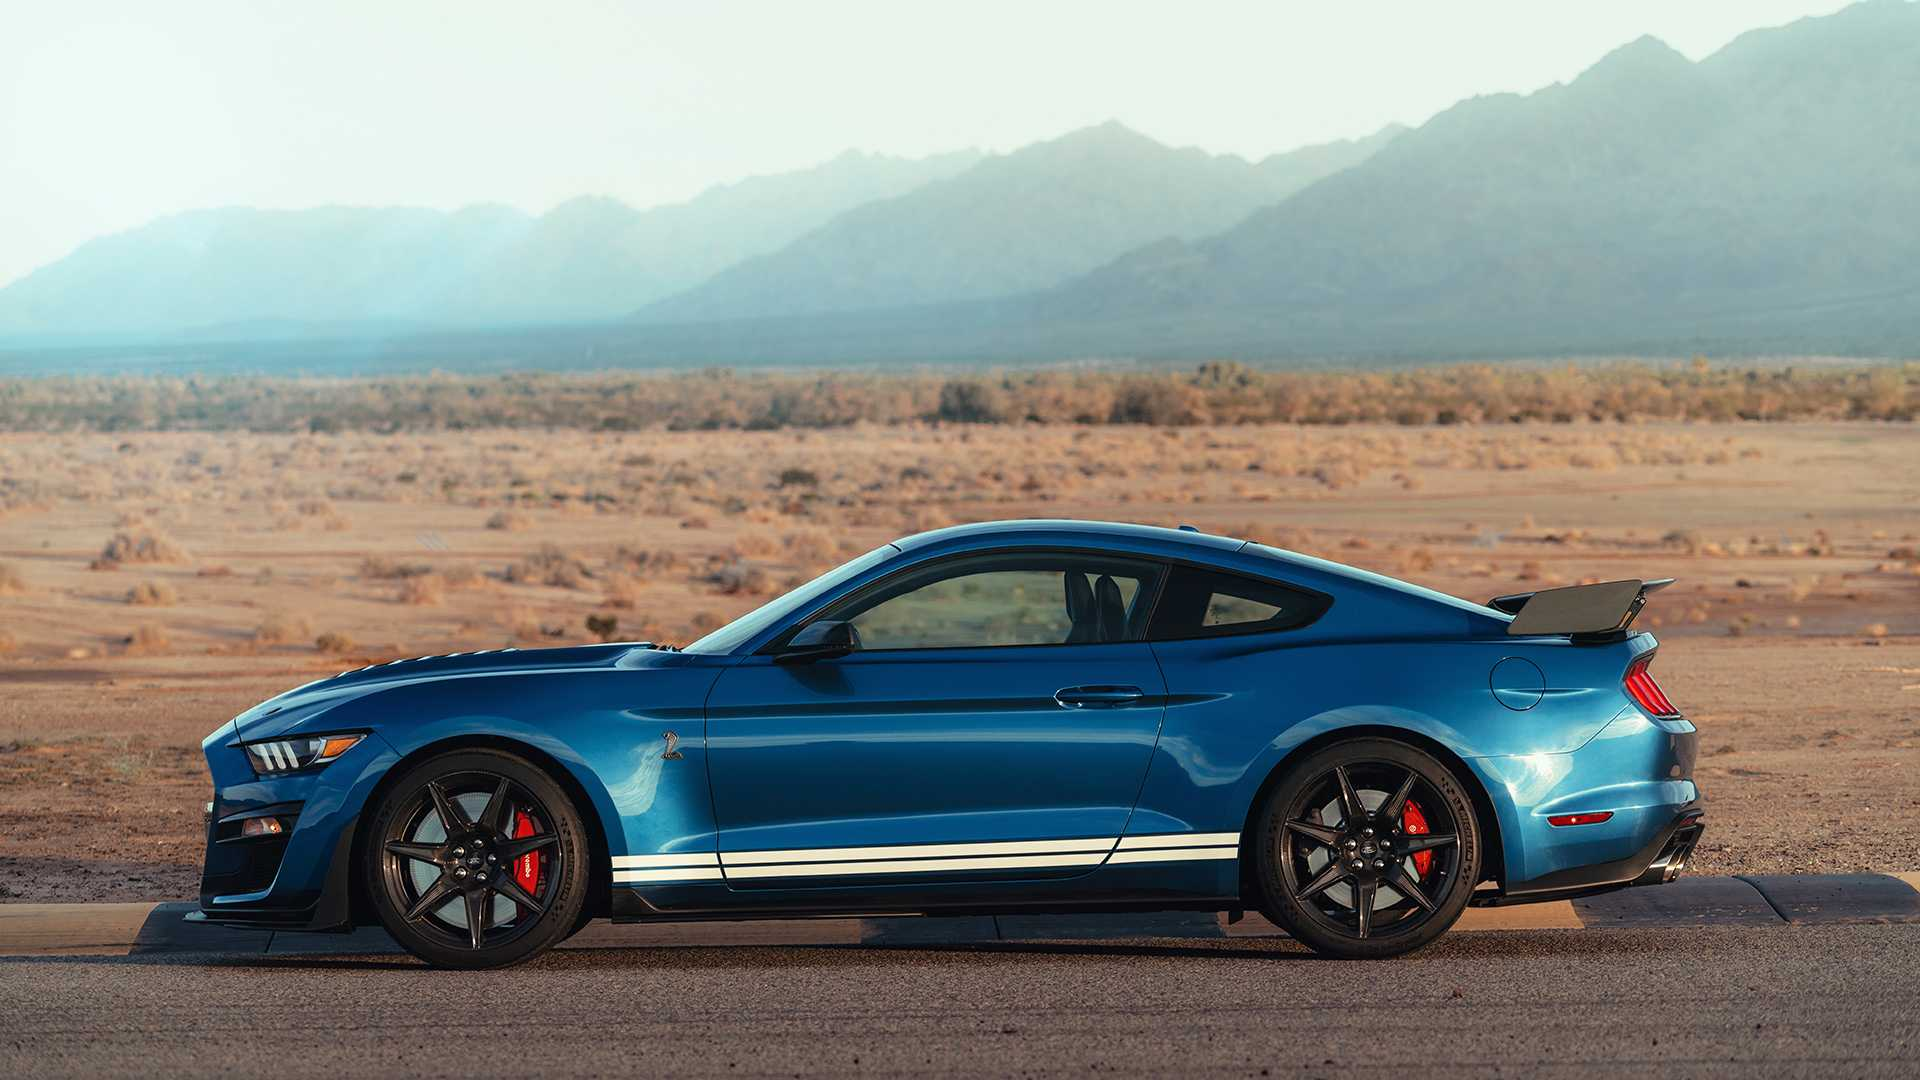 18 New Ford Gt500 Mustang 2020 Redesign And Review